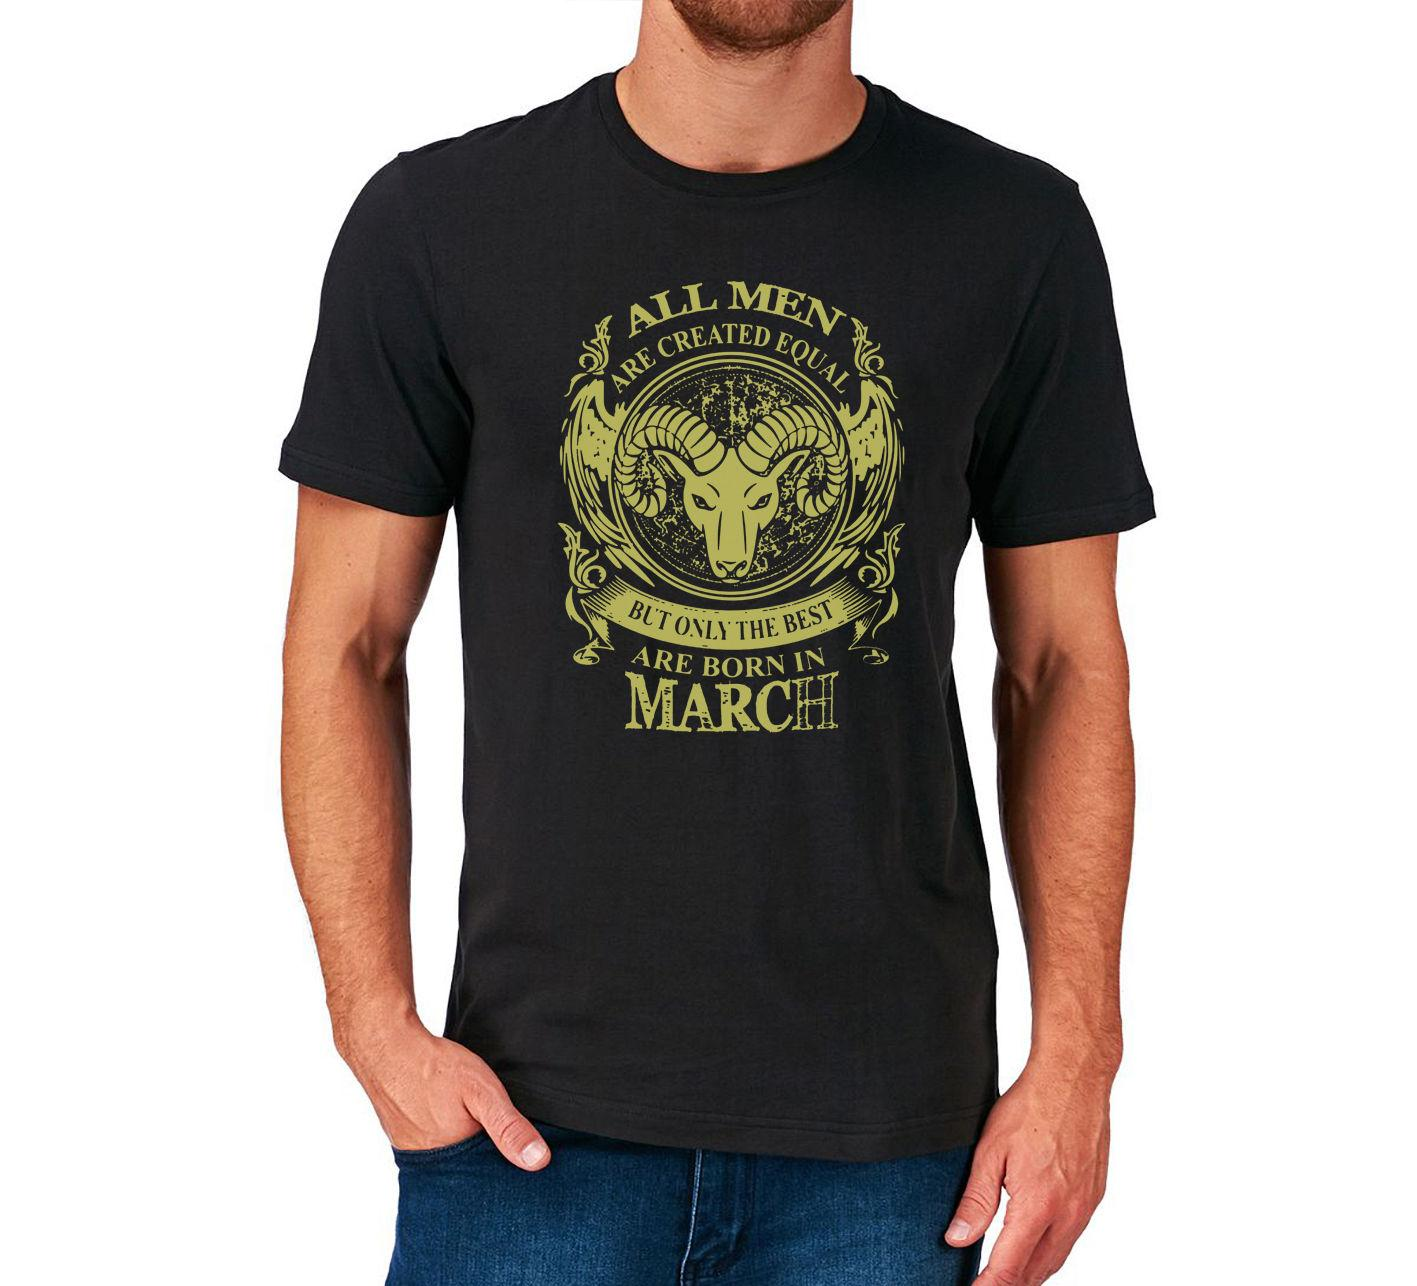 BIRTHDAY T SHIRT MARCH ARIES PRESENT GIFT STAR SIGN ZODIAC Cool Casual Pride Shirt Men Unisex New Fashion Tshirt Designer From Cls6688522